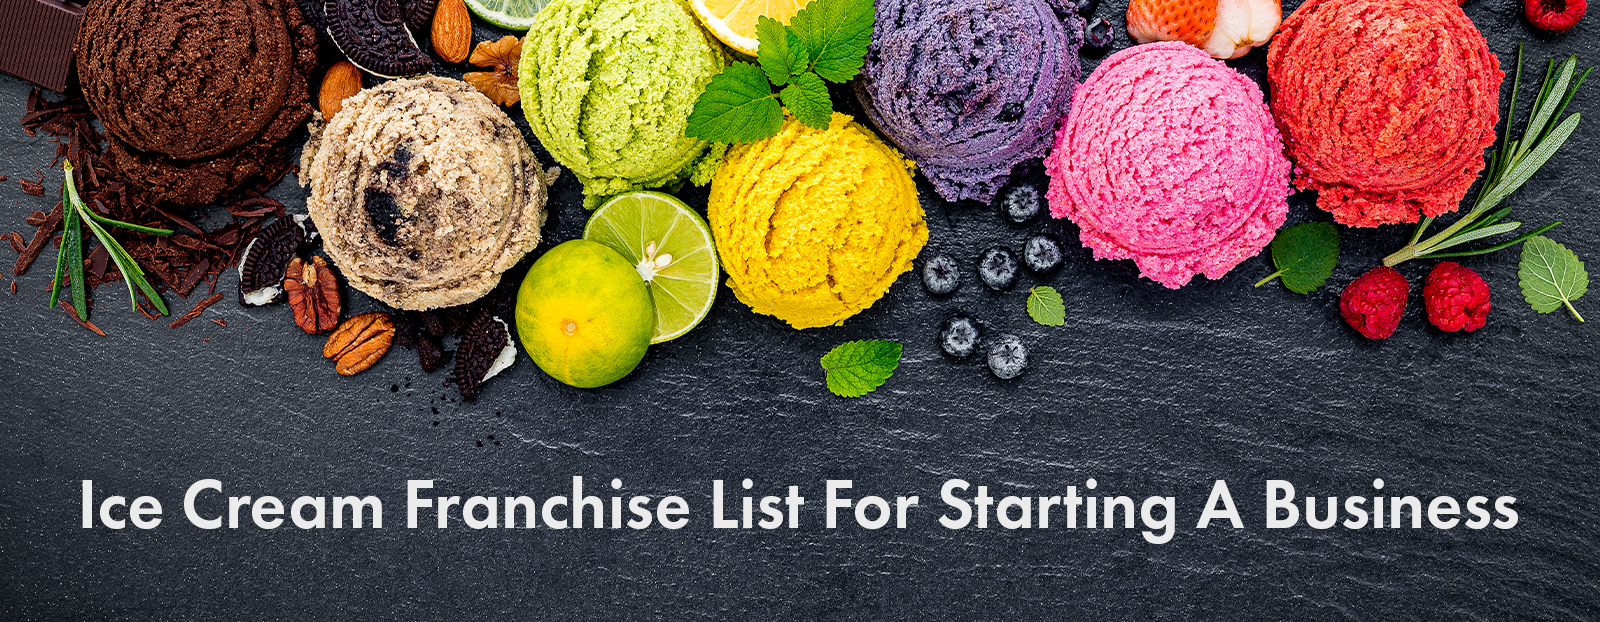 Ice Cream Franchise List For Starting A Business